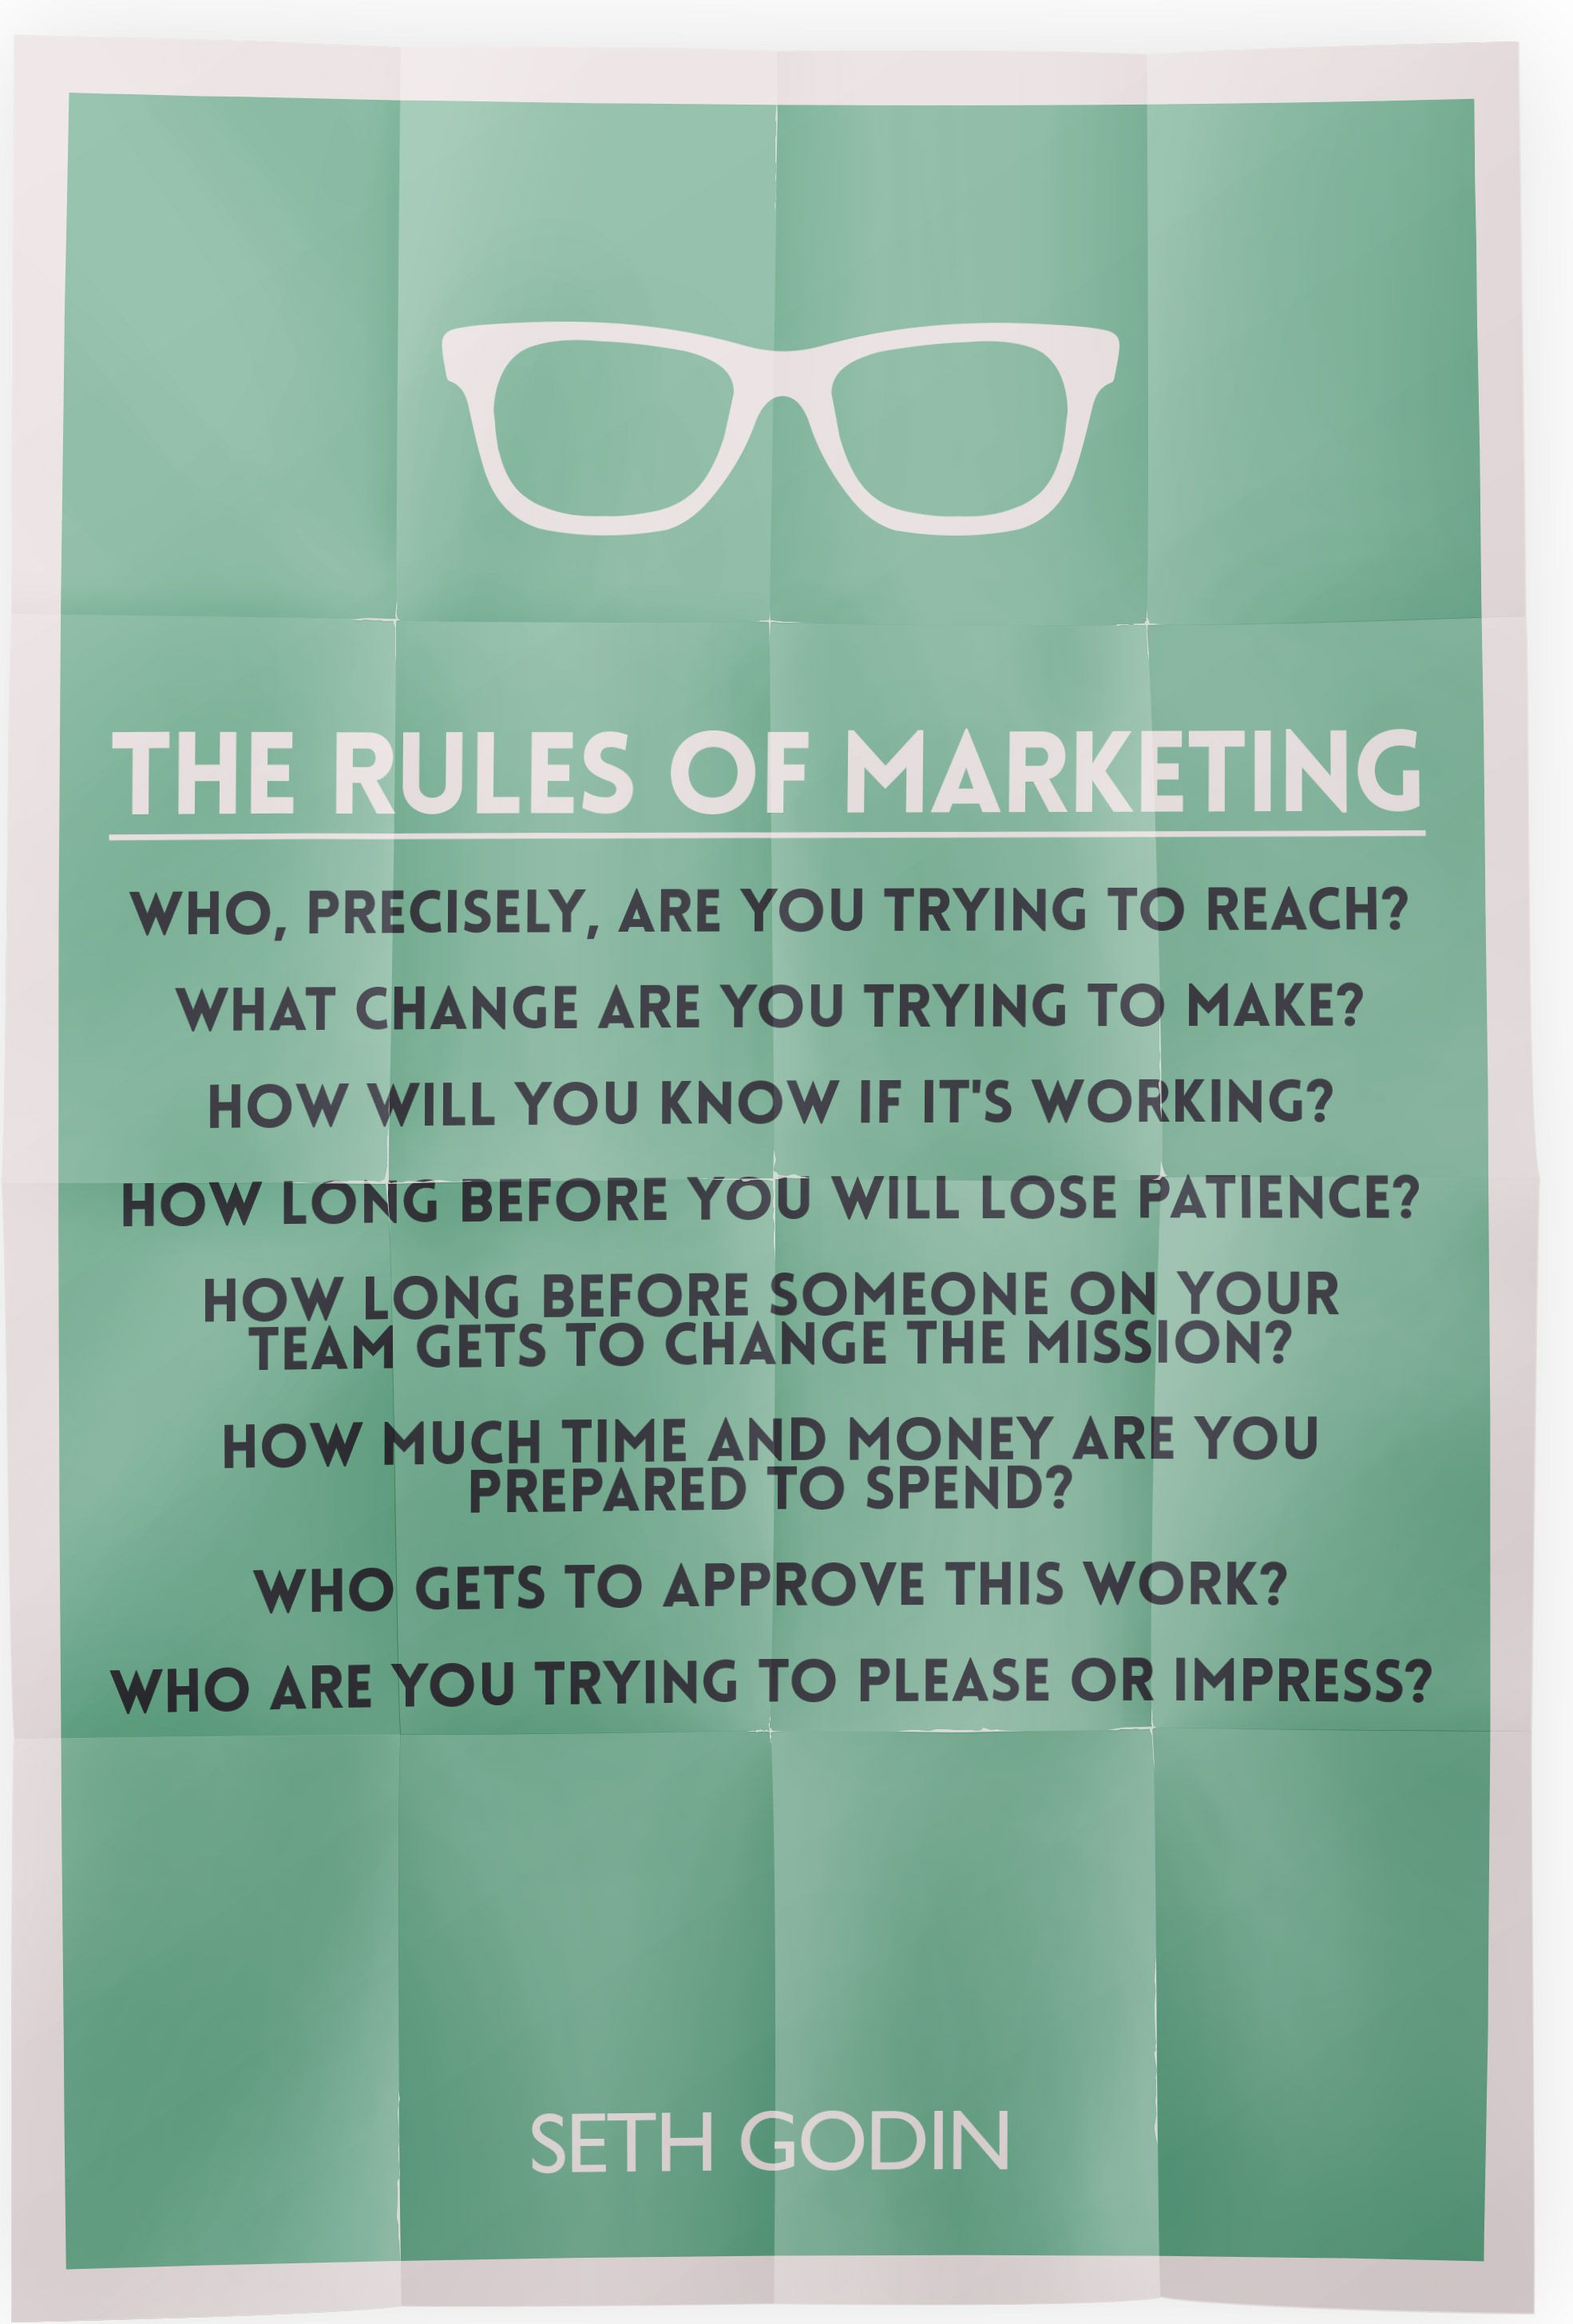 The Rules of Marketing from Seth Godin. http//www